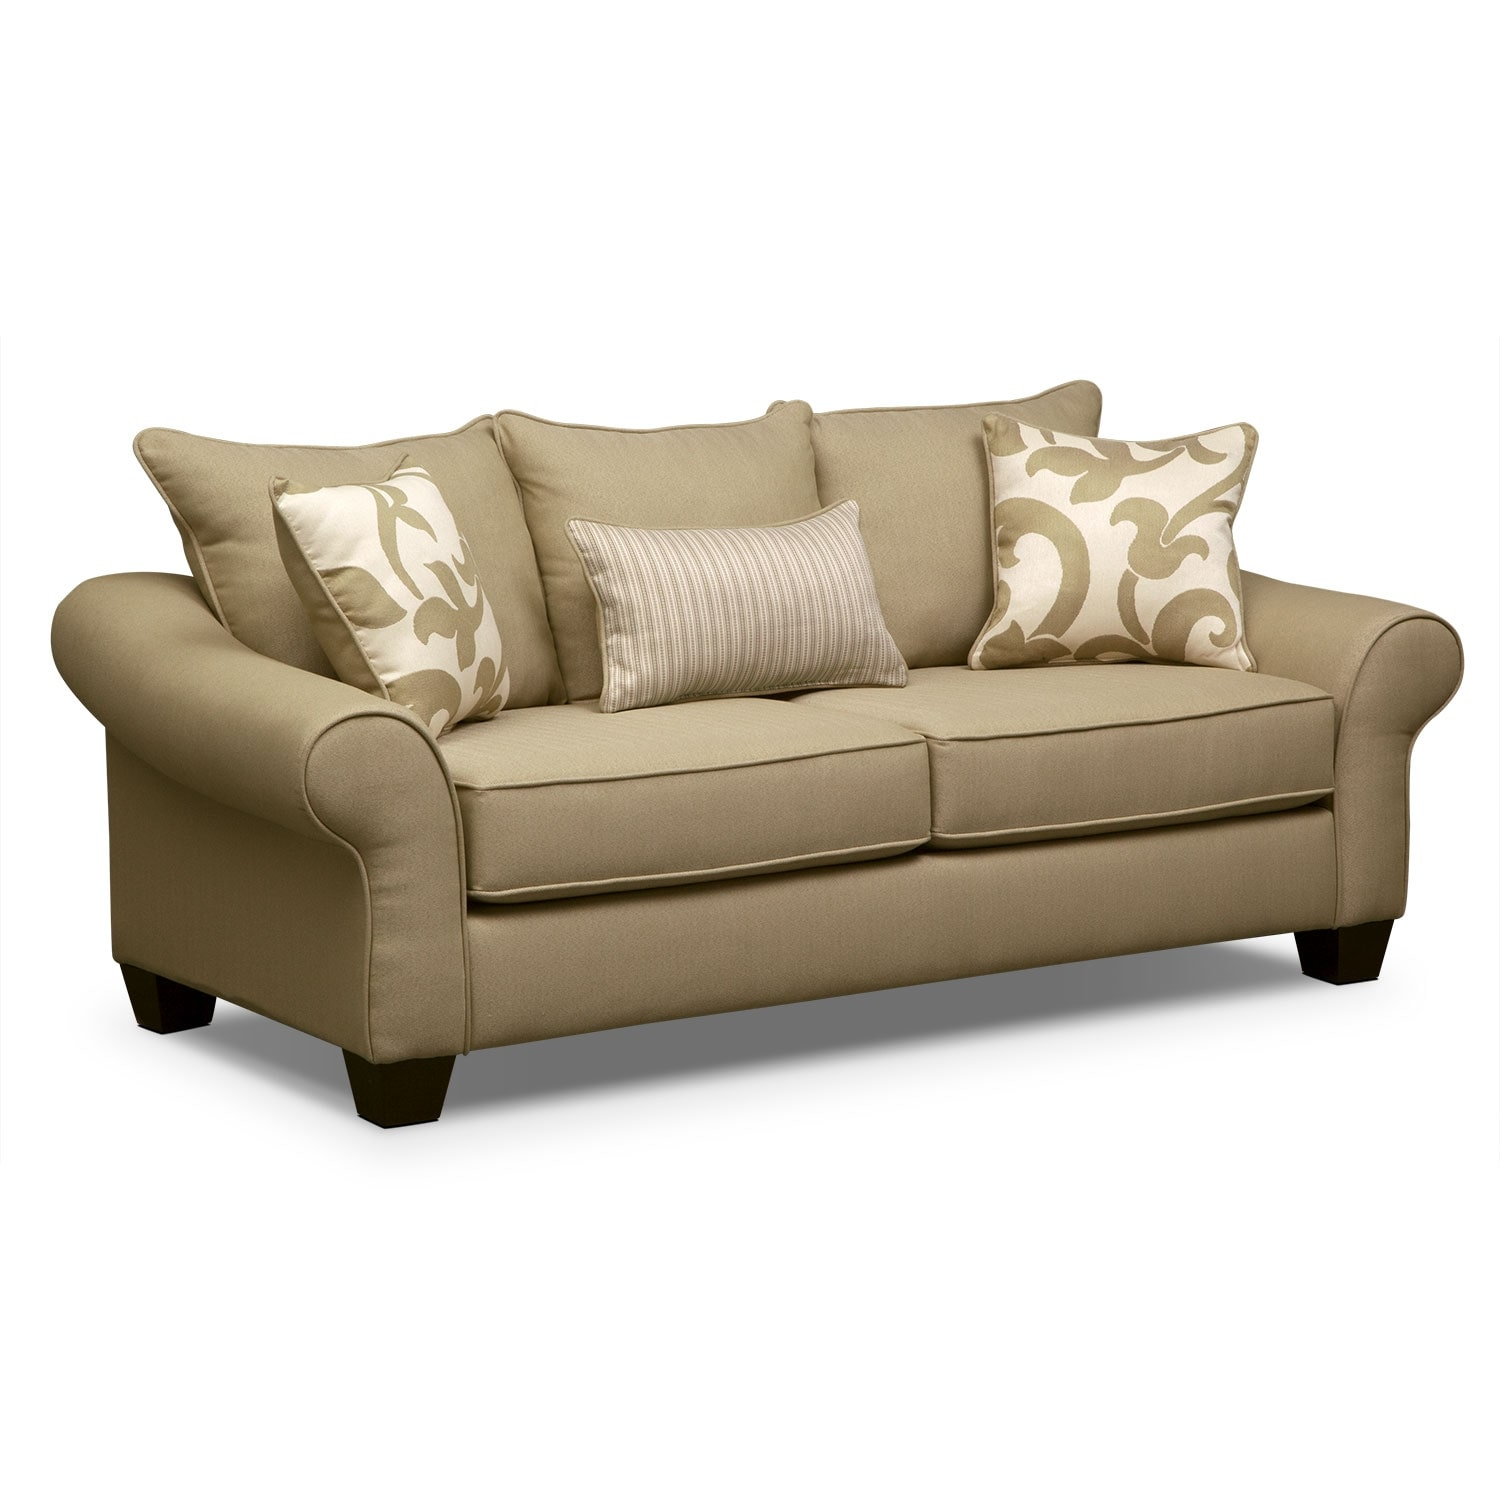 Colette Full Memory Foam Sleeper Sofa Khaki Value City Furniture